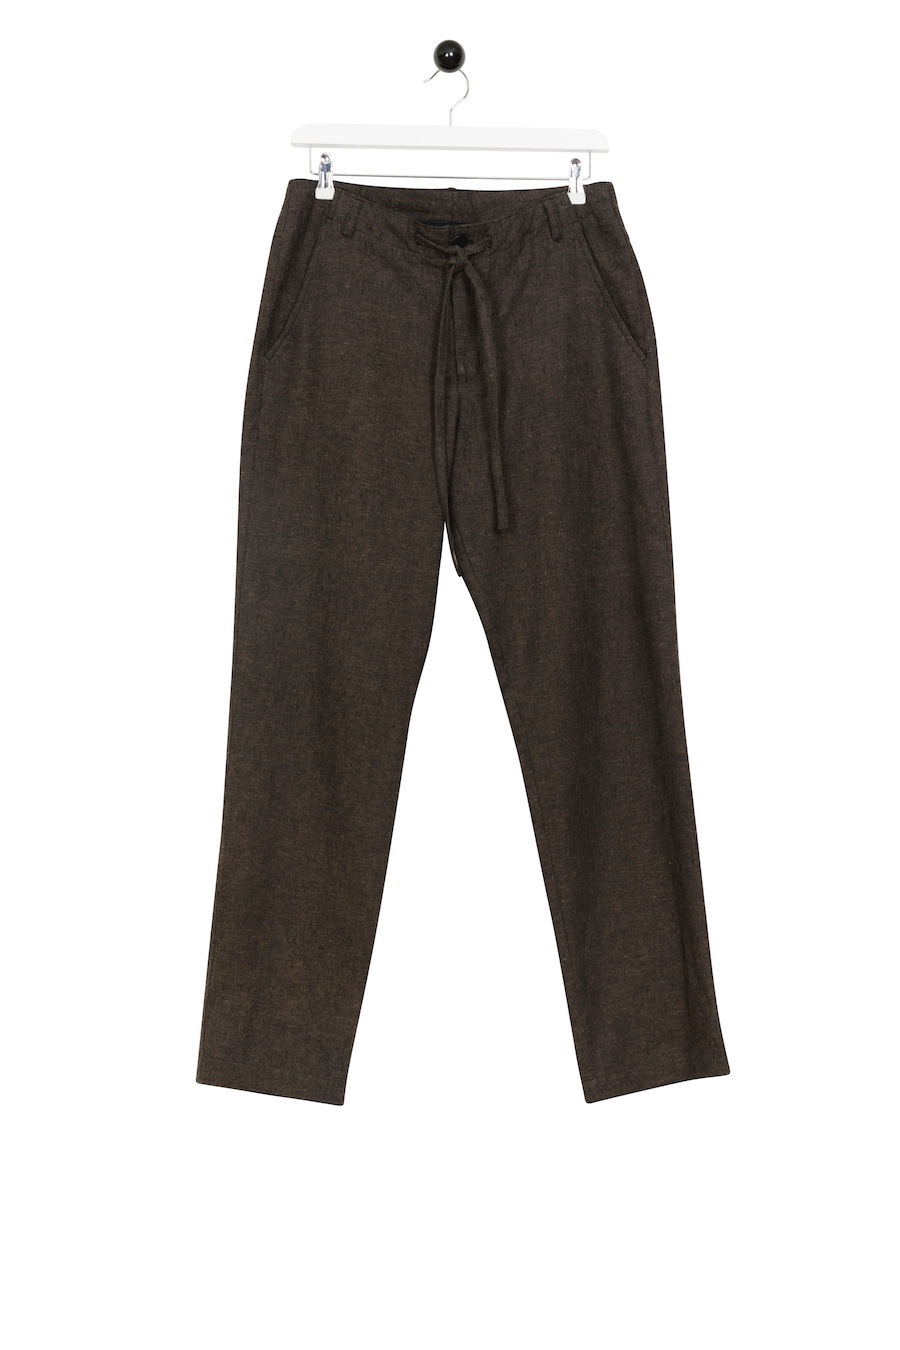 Holsteiner Trousers